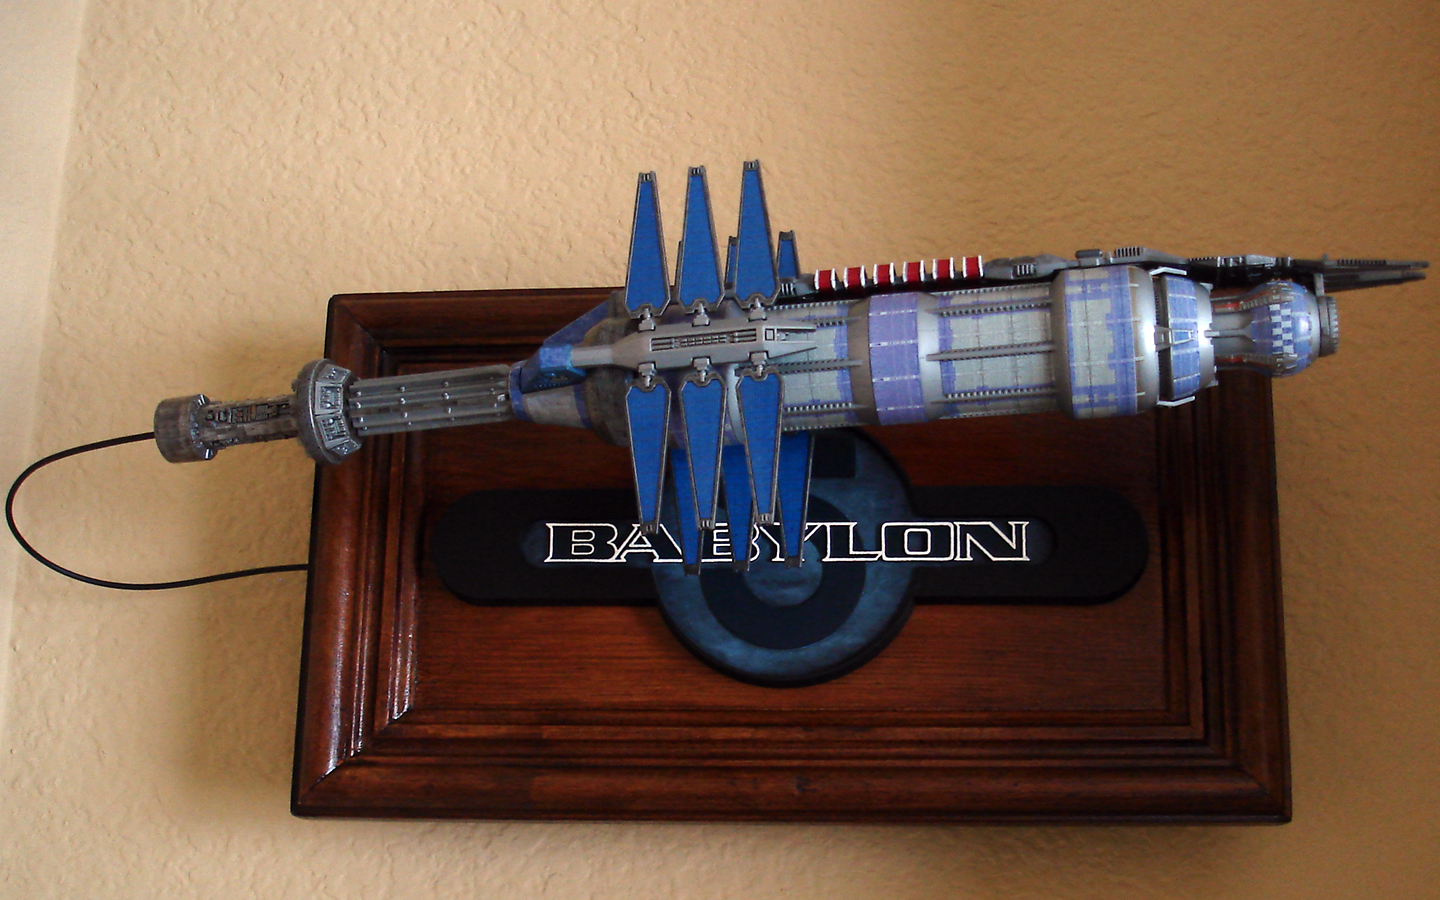 Skylab Space Station Model Kit - Pics about space